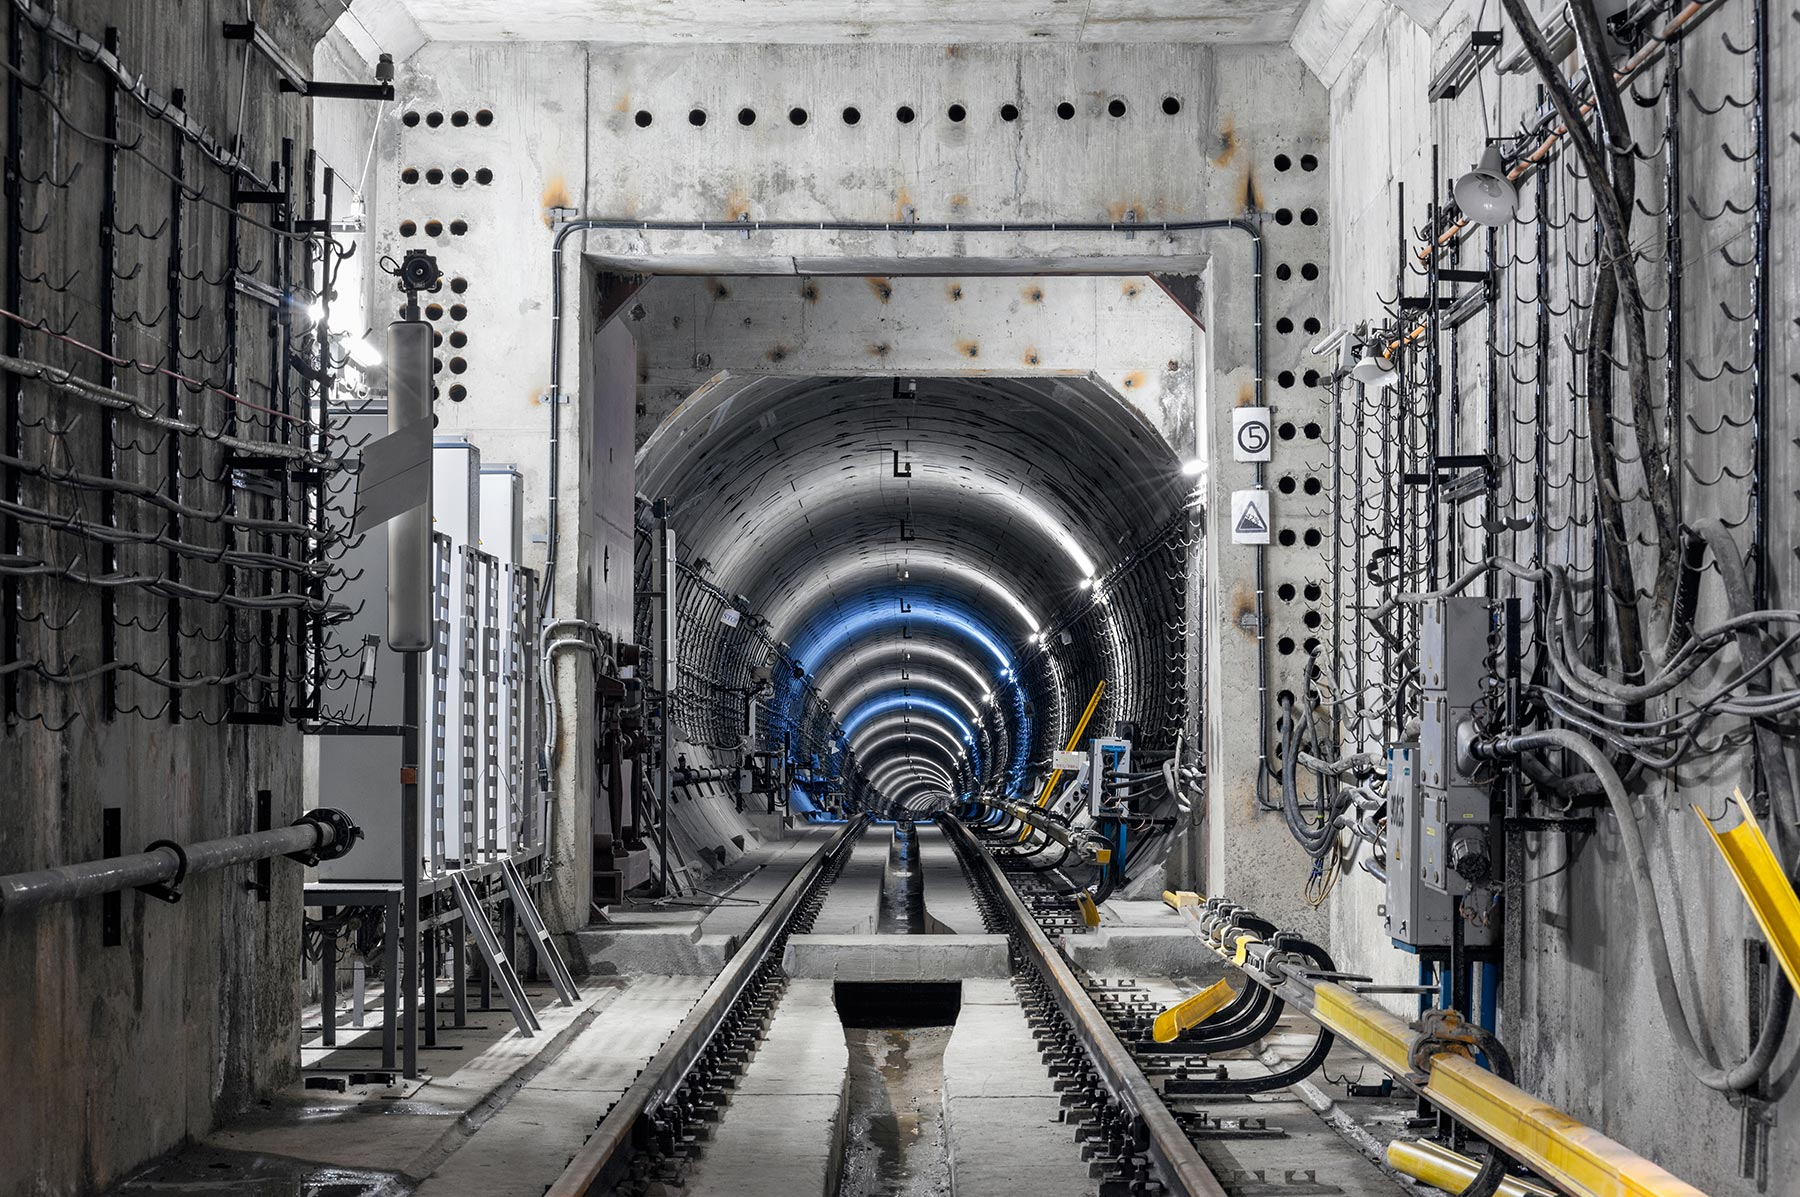 construction-of-the-subway-PVTZX2M